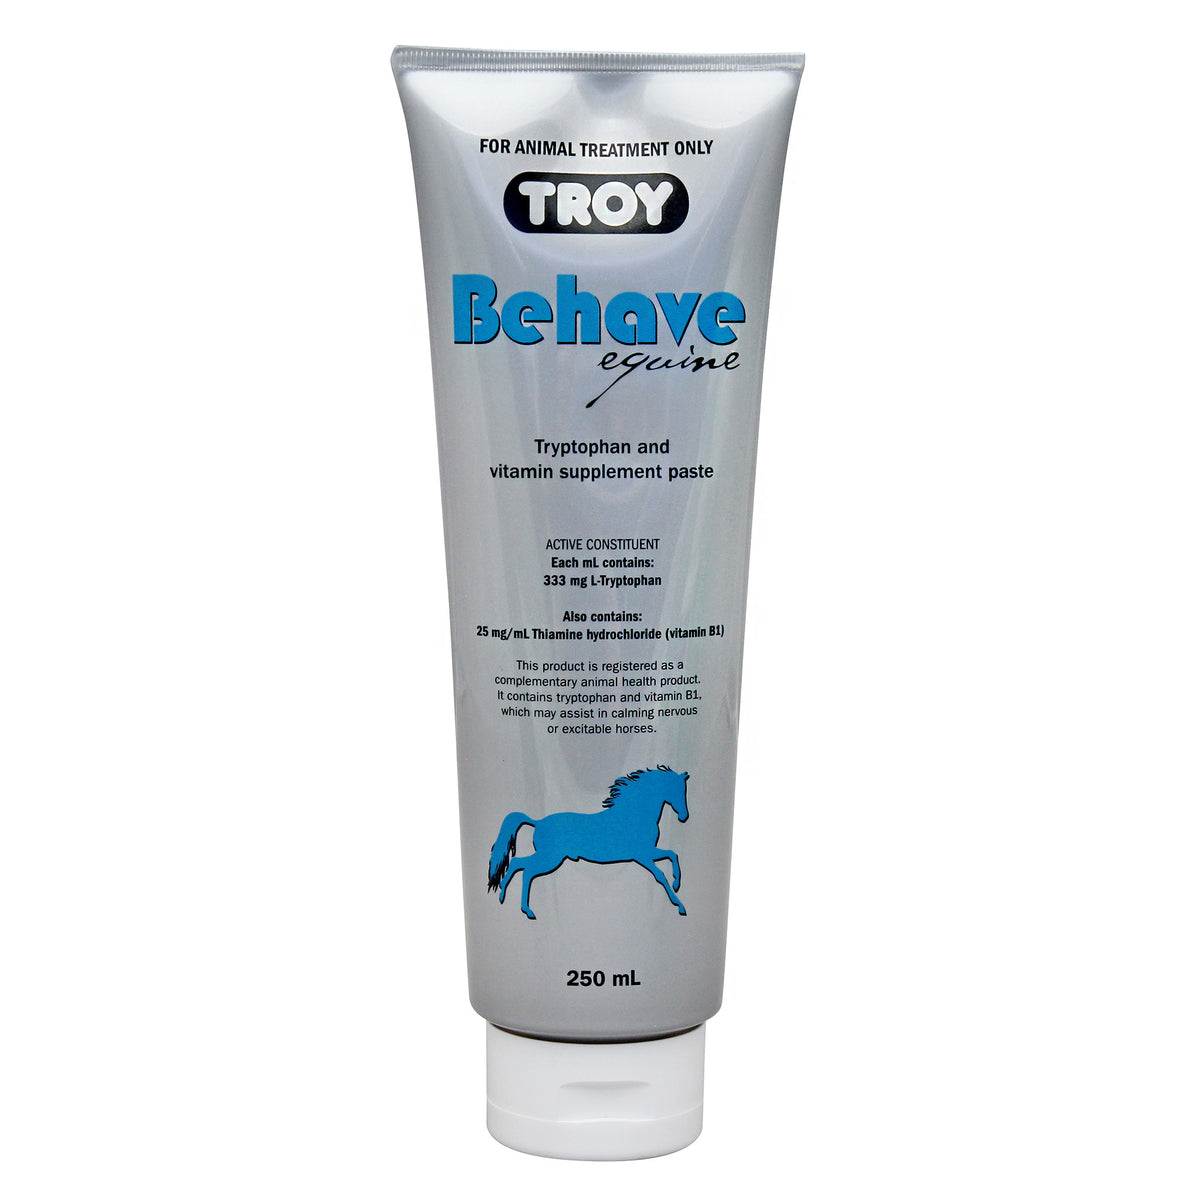 Troy Behave Equine Tryptophan and Vitamin Supplement Paste